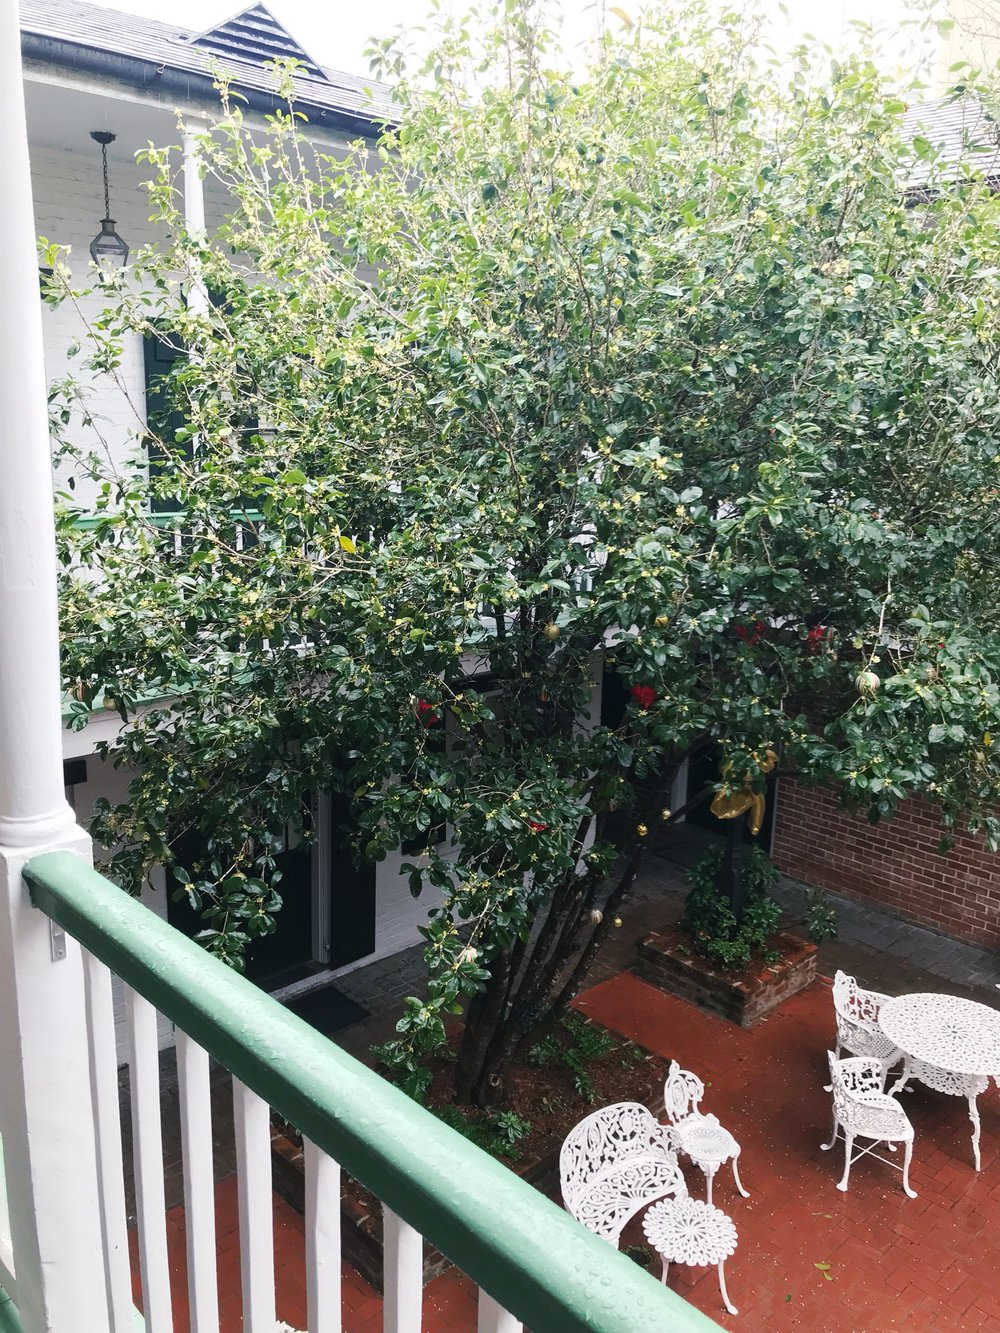 Our hotel had courtyards and wrought iron furniture and charming southern touches galore.